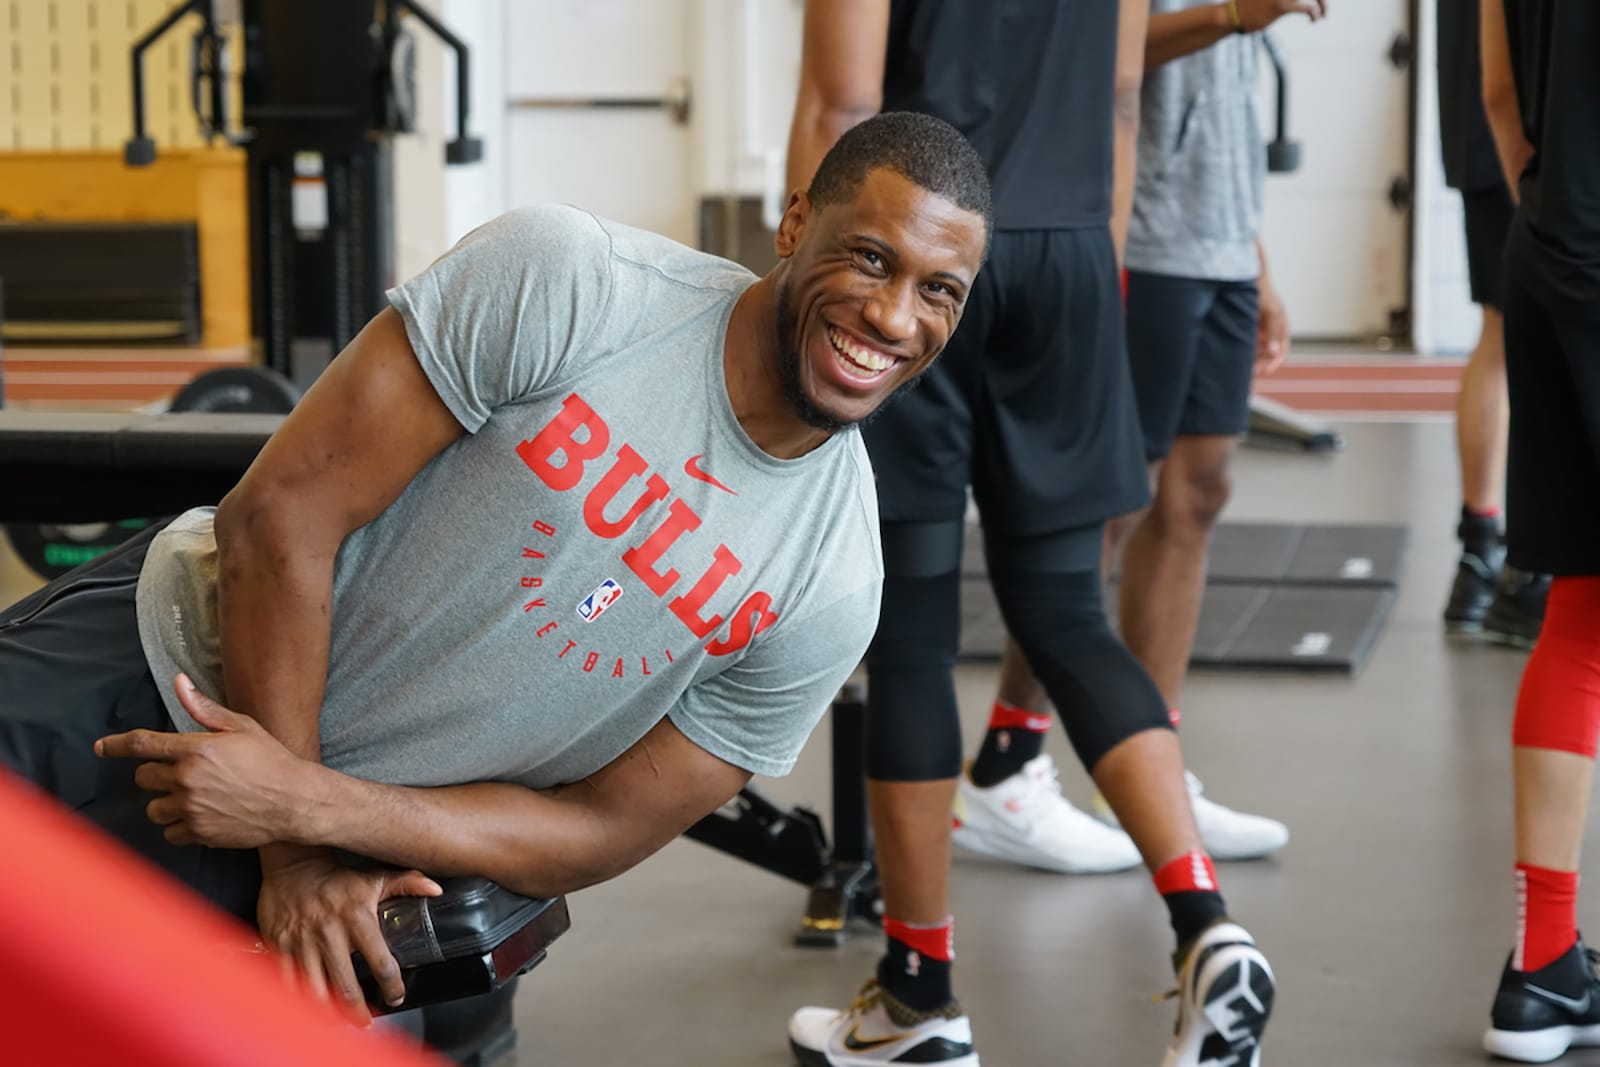 Thad smiling during a preseason workout